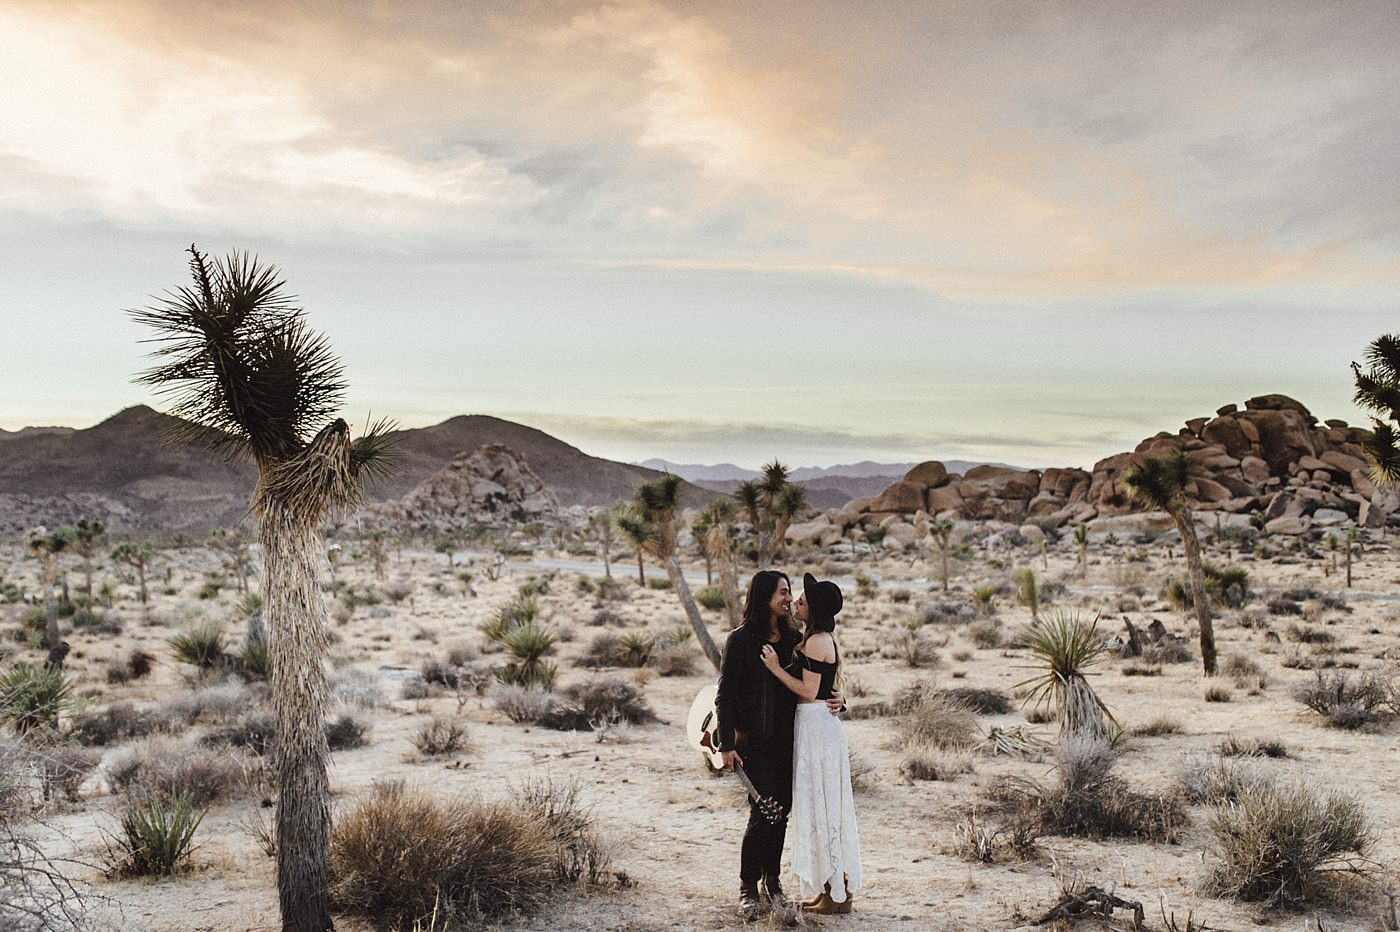 international-elopement-photographer_0207 Kinsey & Josh & Banjo Photographer in Joshuatreeinternational elopement photographer 0207